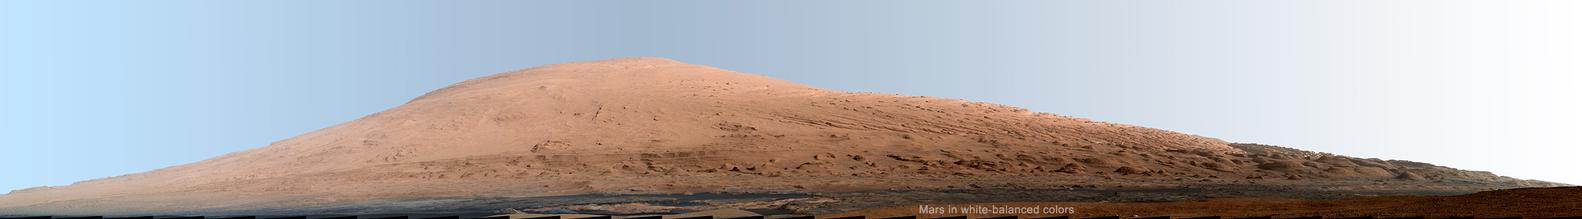 Image of Mount Sharp Panorama in White-Balanced Colors